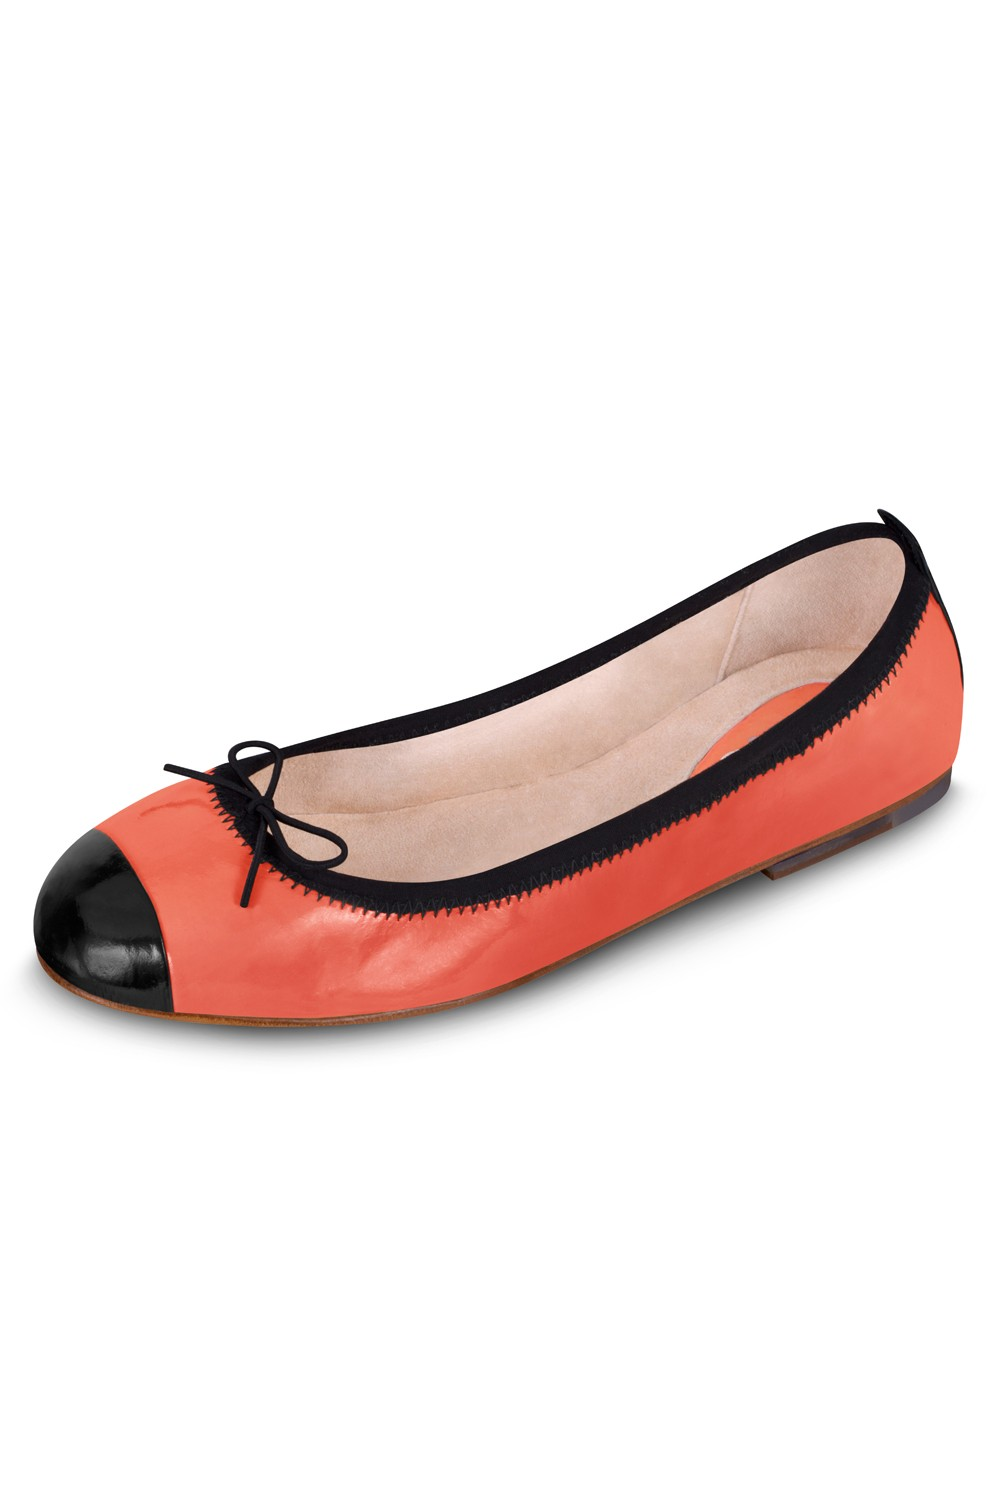 Luxury Ballet Flat - Femme Womens Fashion Shoes